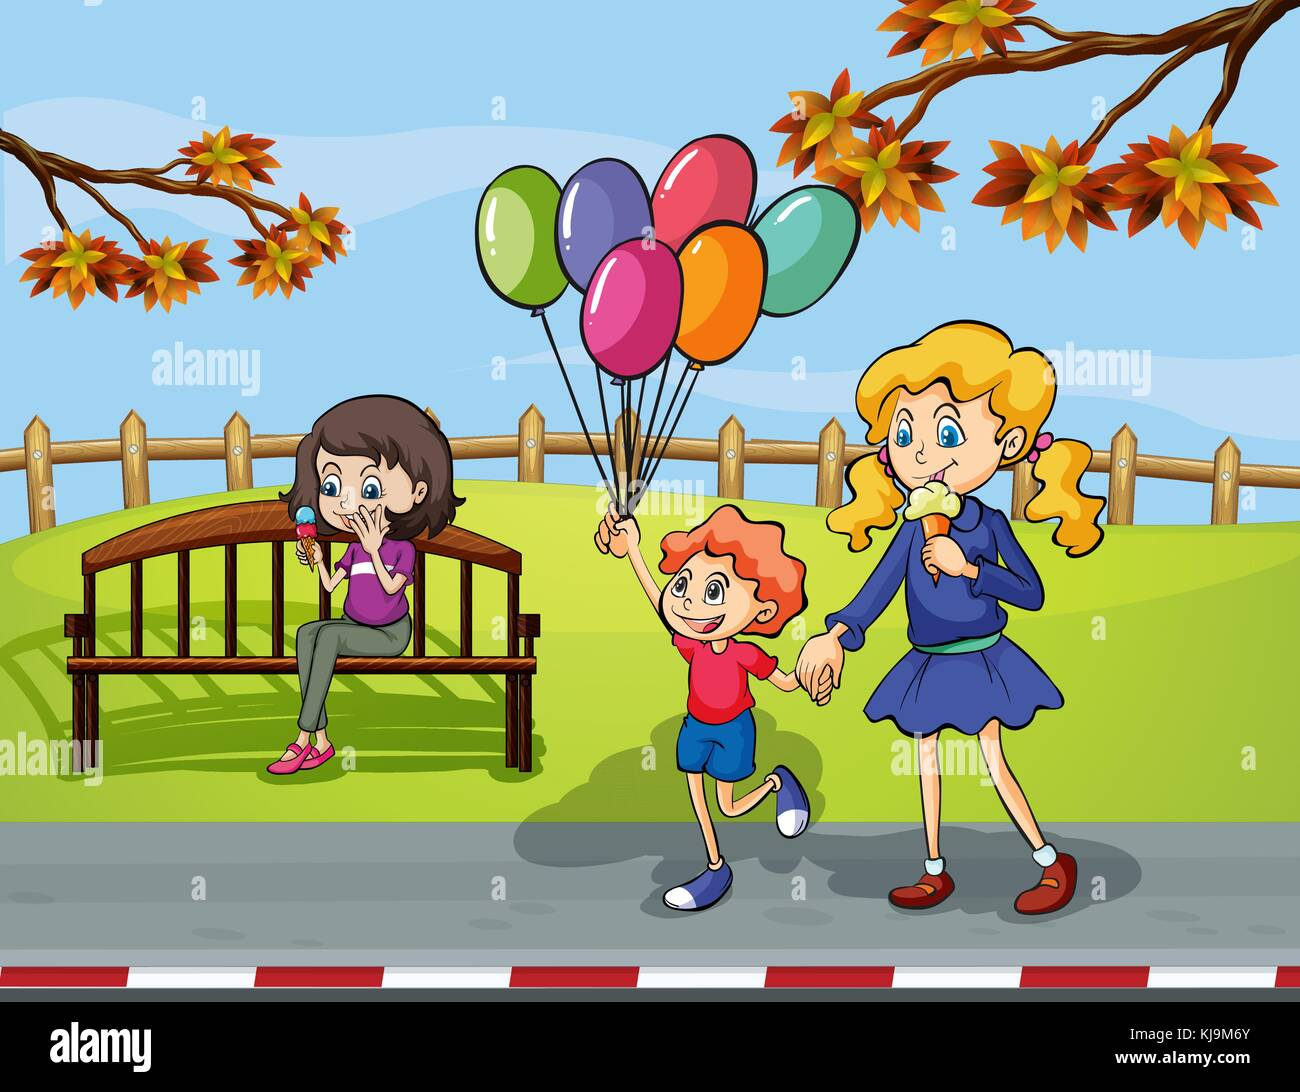 Illustration of two girls with a kid holding a balloon in the park - Stock Vector